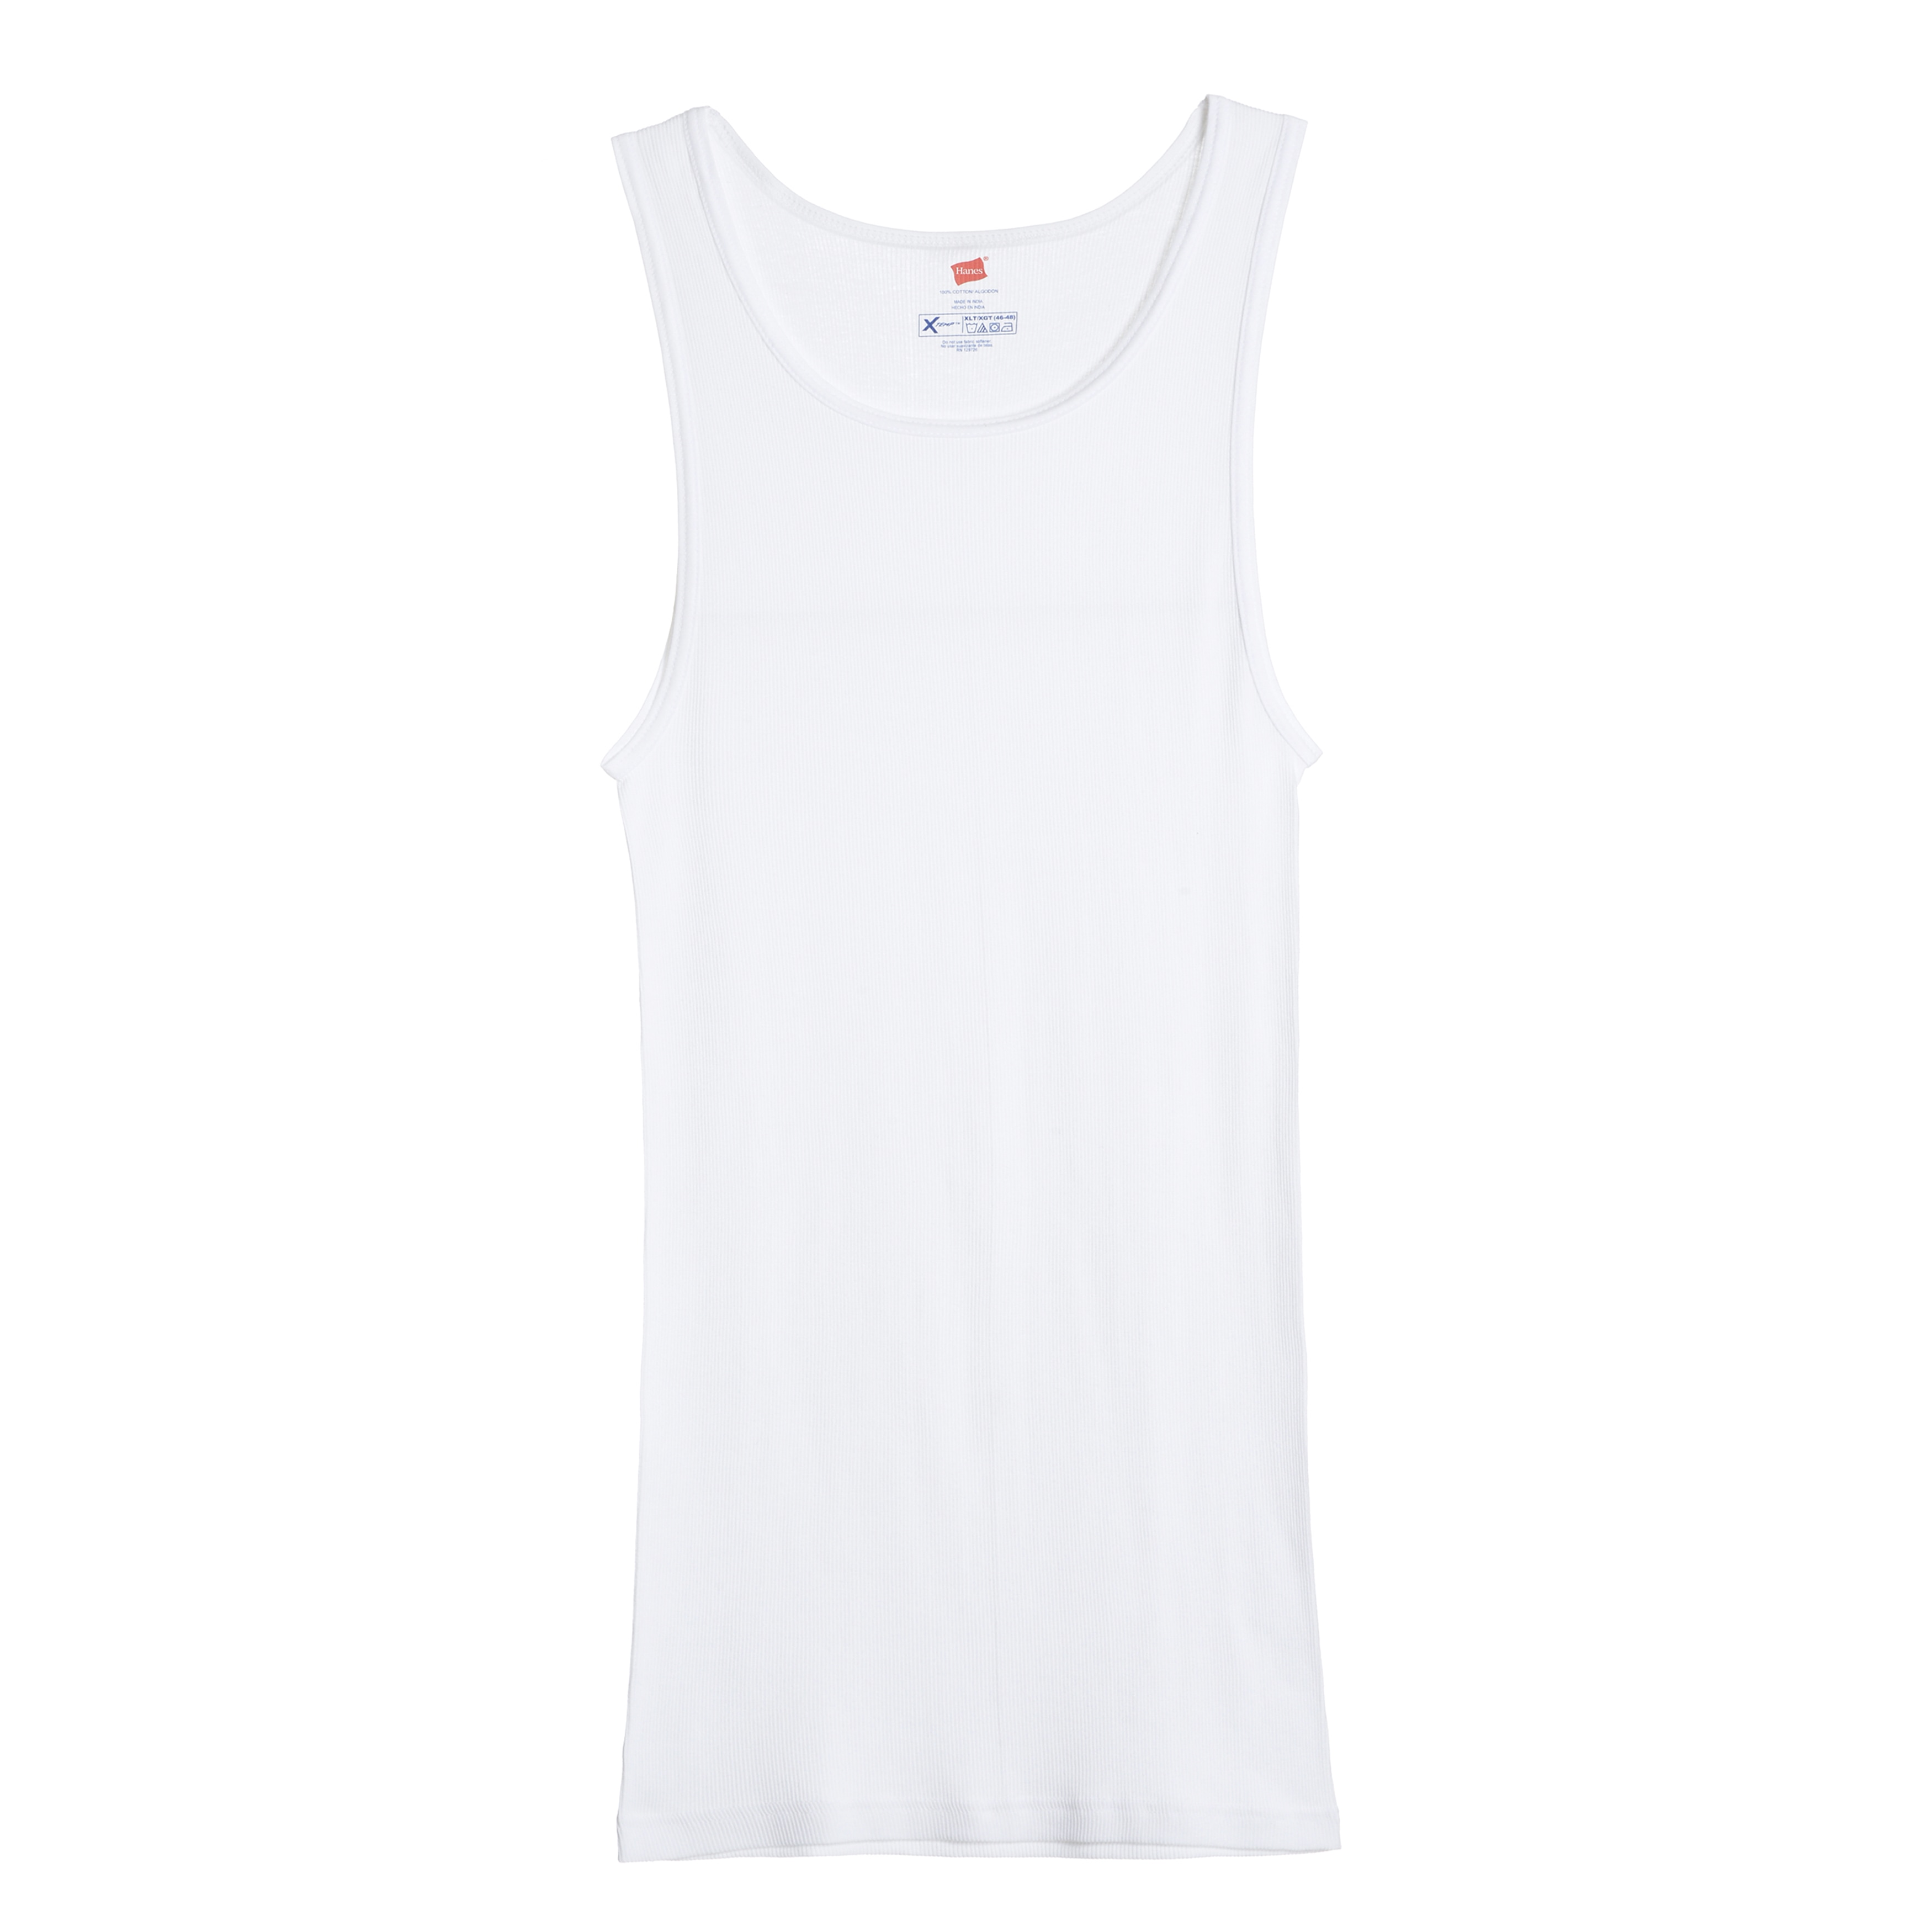 a0d6313bf Shop Hanes X-Temp Men's Big & Tall White Tank Undershirts (Pack of 3) -  Free Shipping Today - Overstock - 10913951